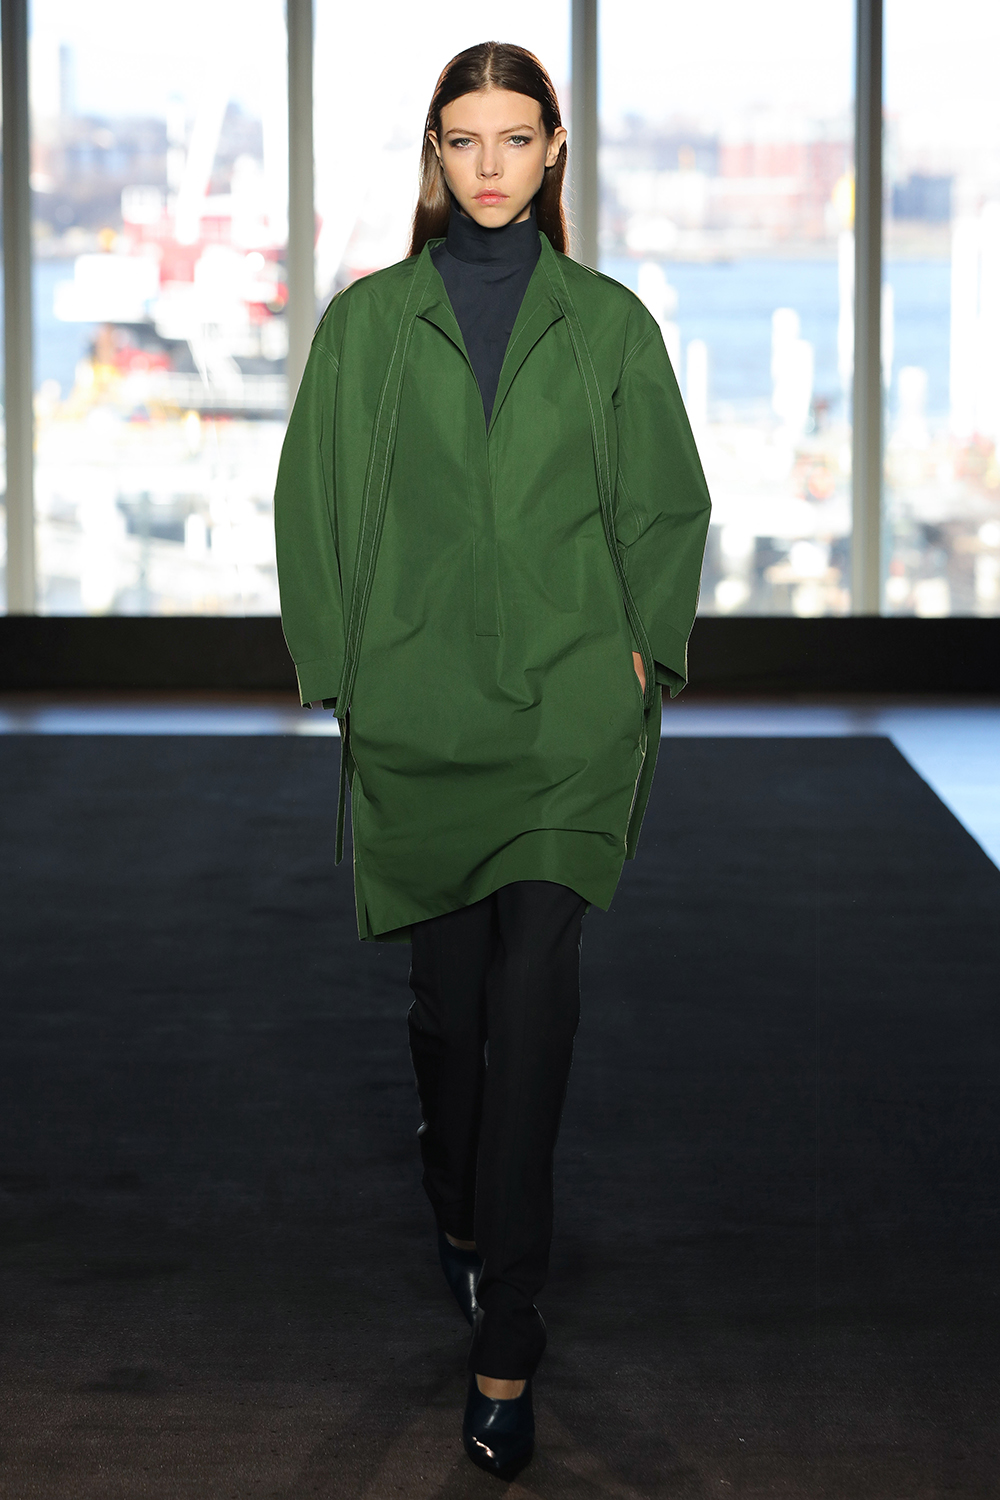 Look 6 Moss cotton shirt dress over navy cotton top with  dark teal wool twill pant.